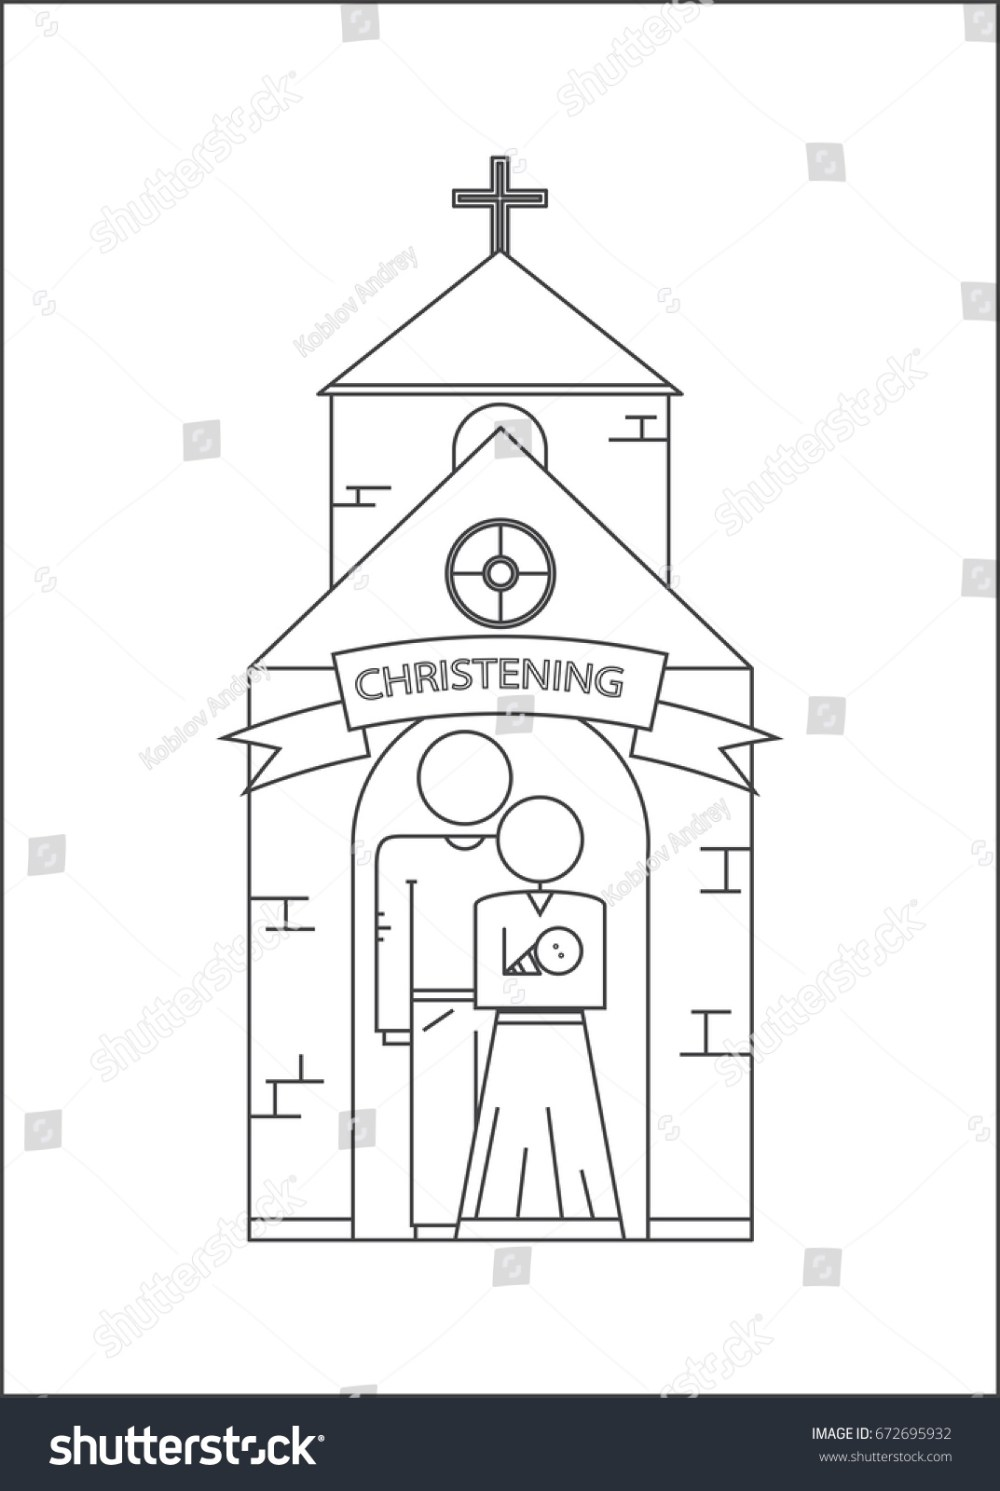 medium resolution of parents and baptism of the child godfather and godmother vector image outline style